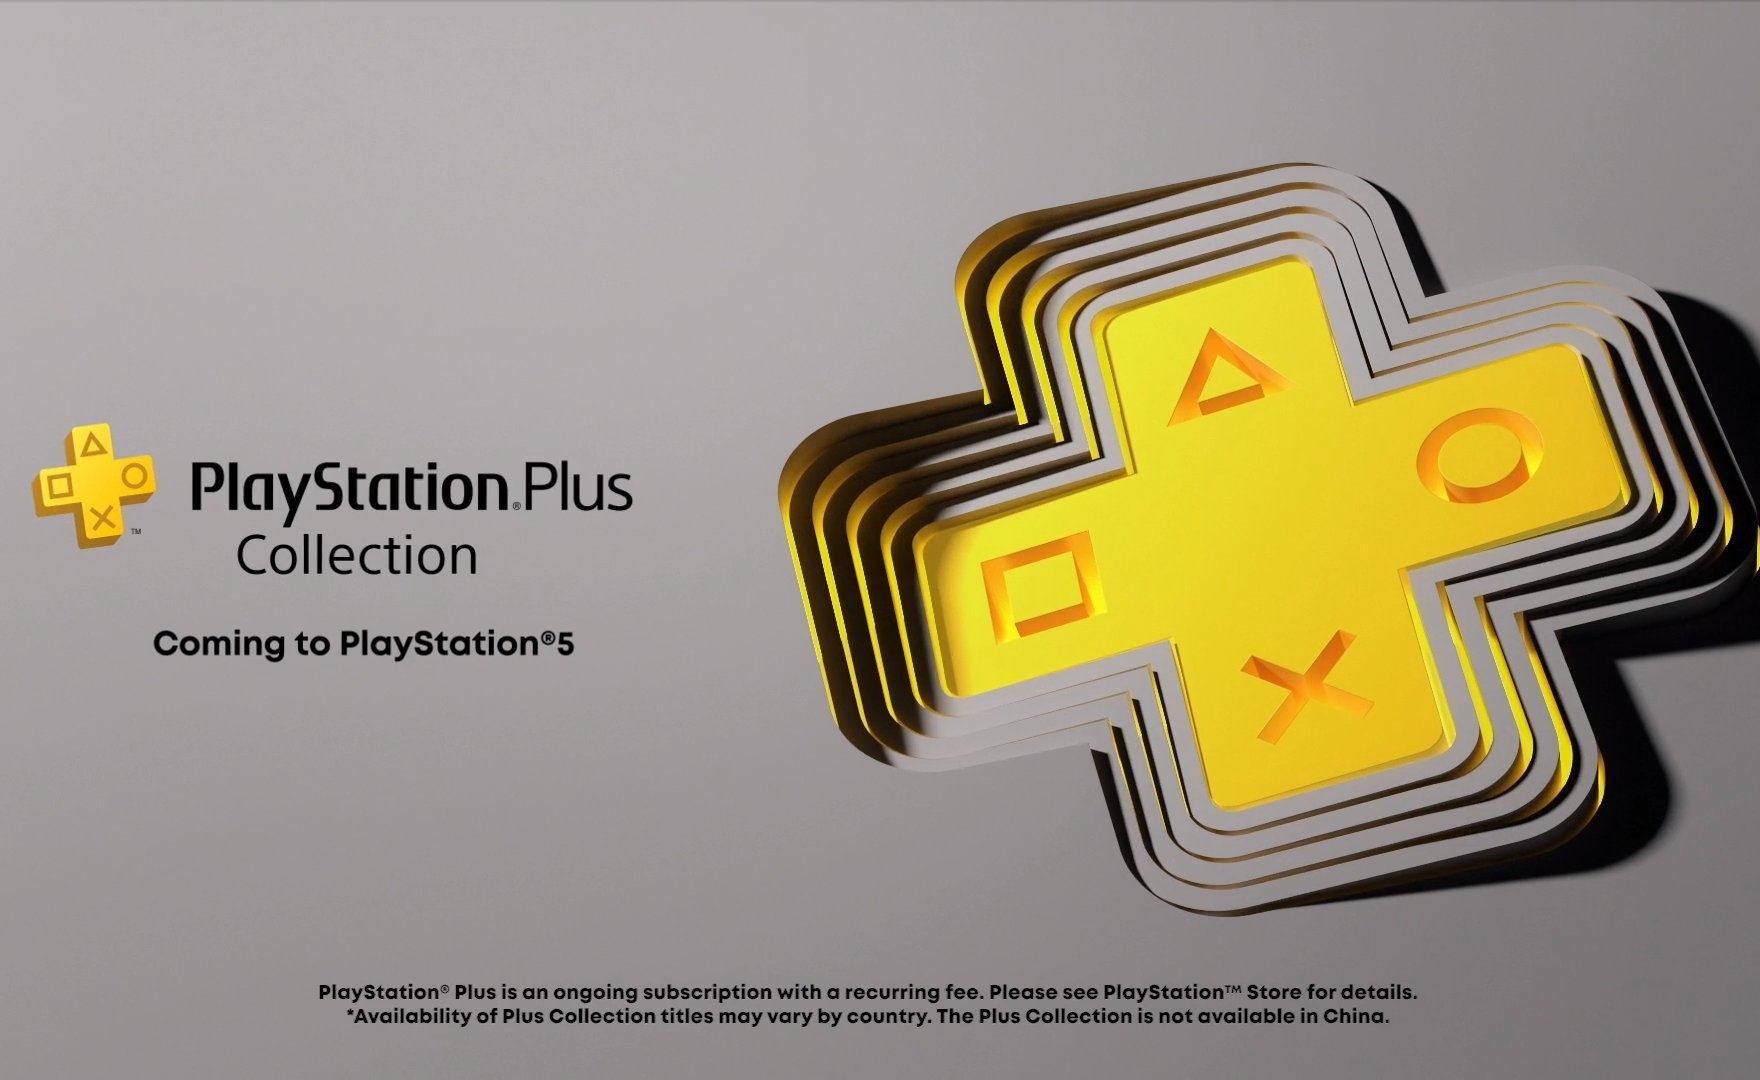 PlayStation 5: per Yoshida, la Plus Collection è una grandiosa novità